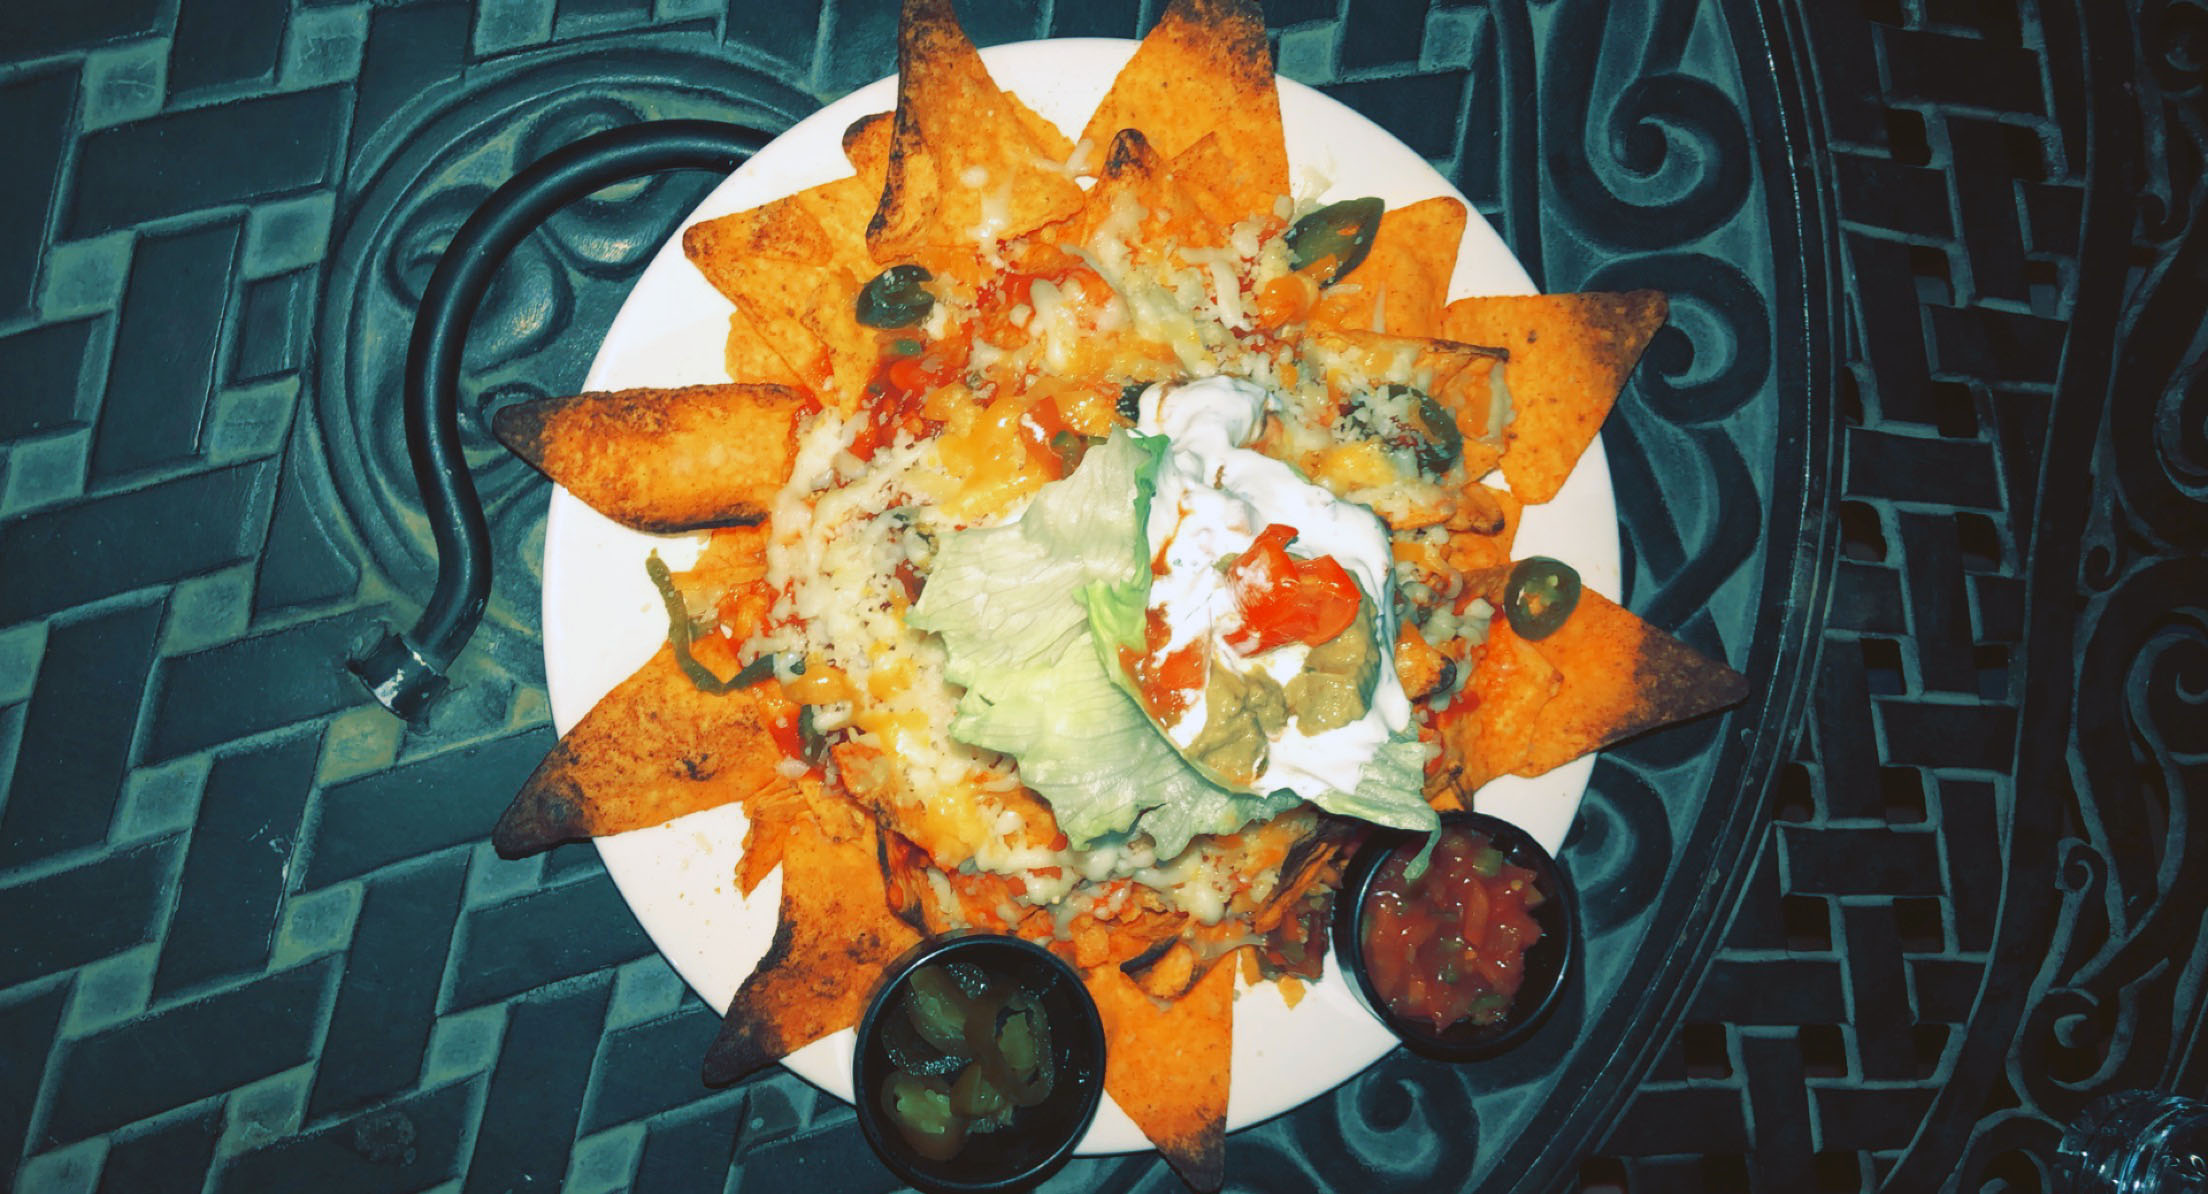 Another favorite of ours to try has been nachos! In Amman, they are made with Doritos, which makes them so much better! These nachos are from Vu's on Rainbow Street. Photo credit: Arguin, 2019